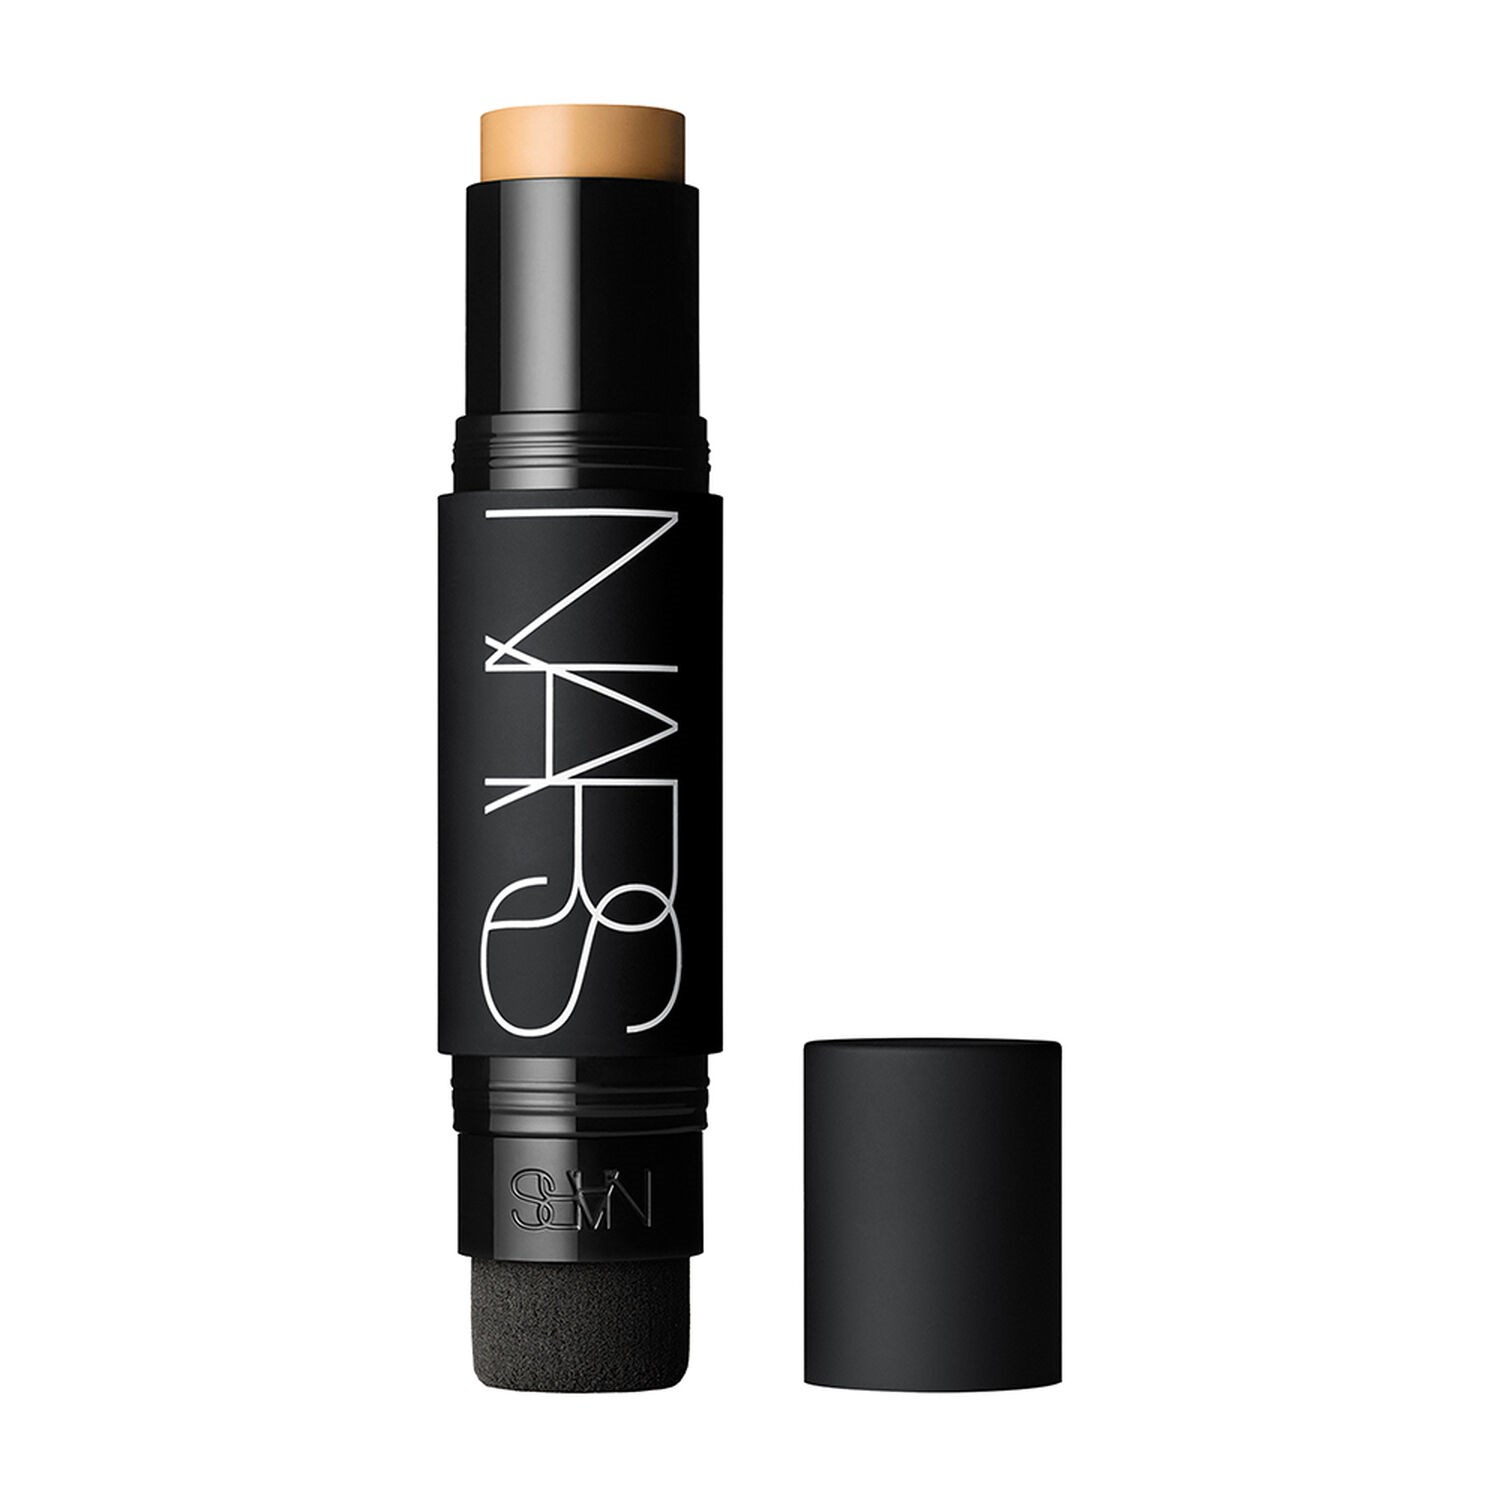 VELVET MATTE FOUNDATION STICK 1